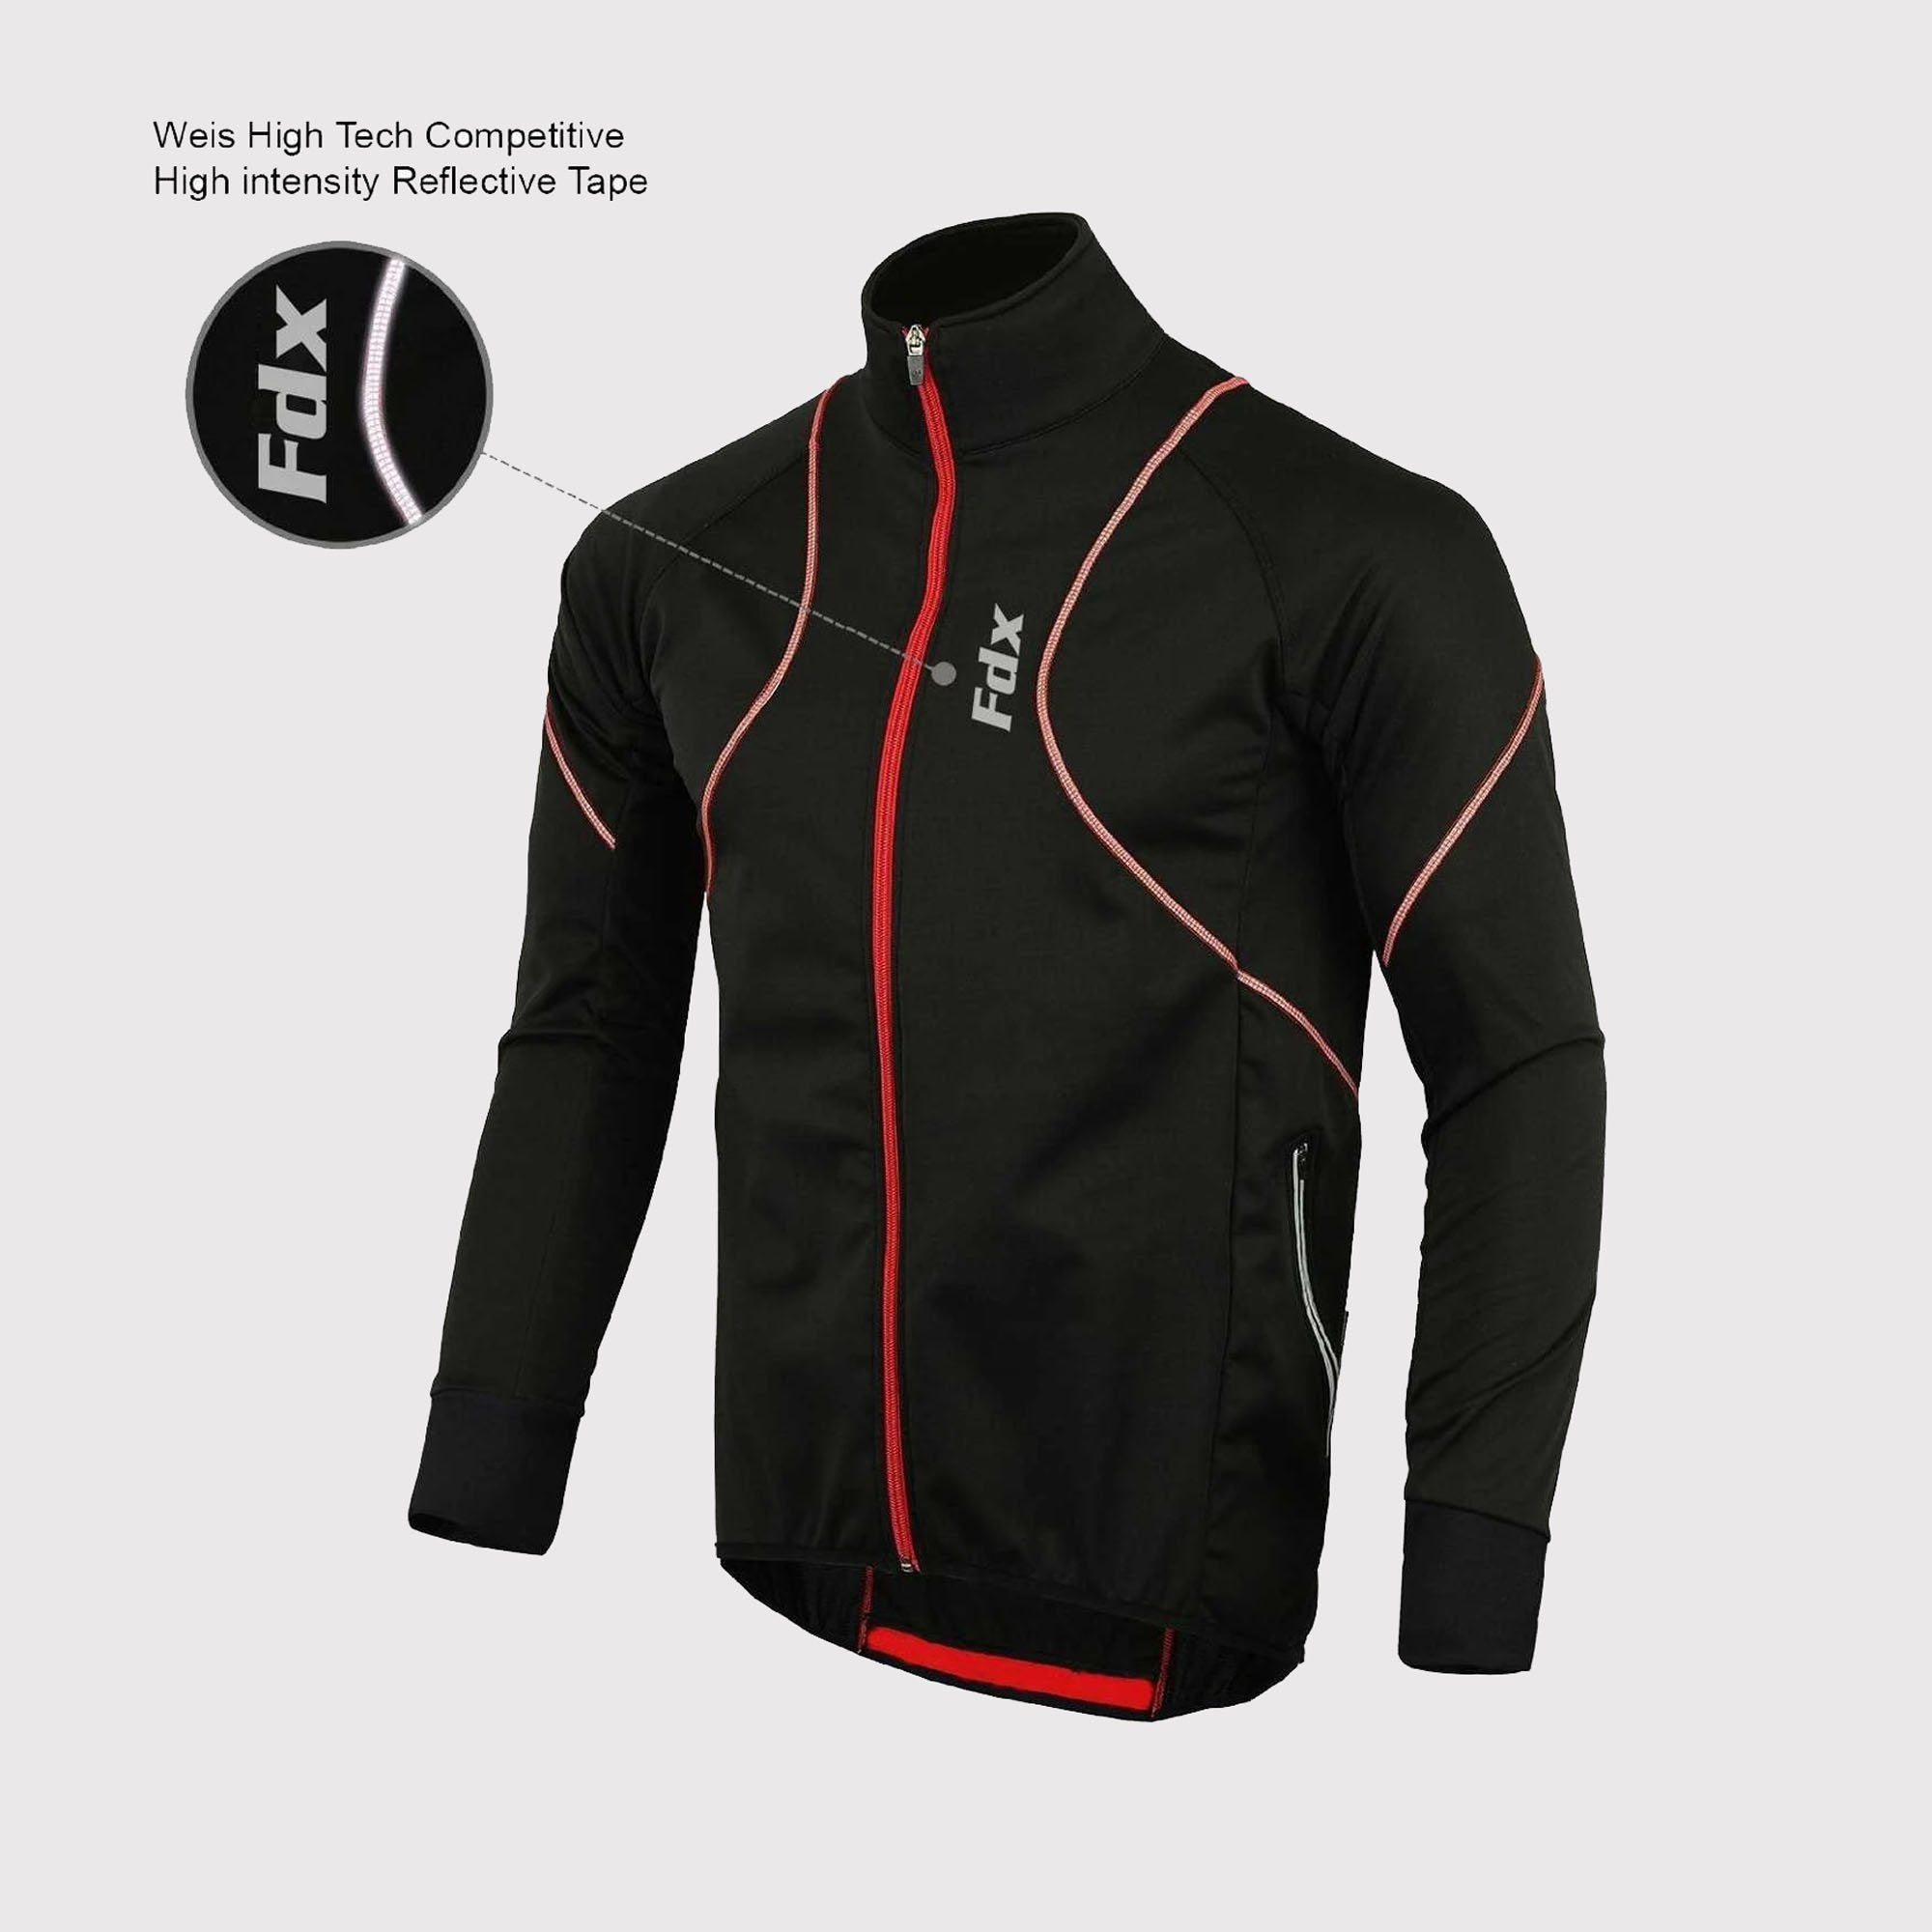 Fdx KL Men's Windproof Cycling Jacket Red